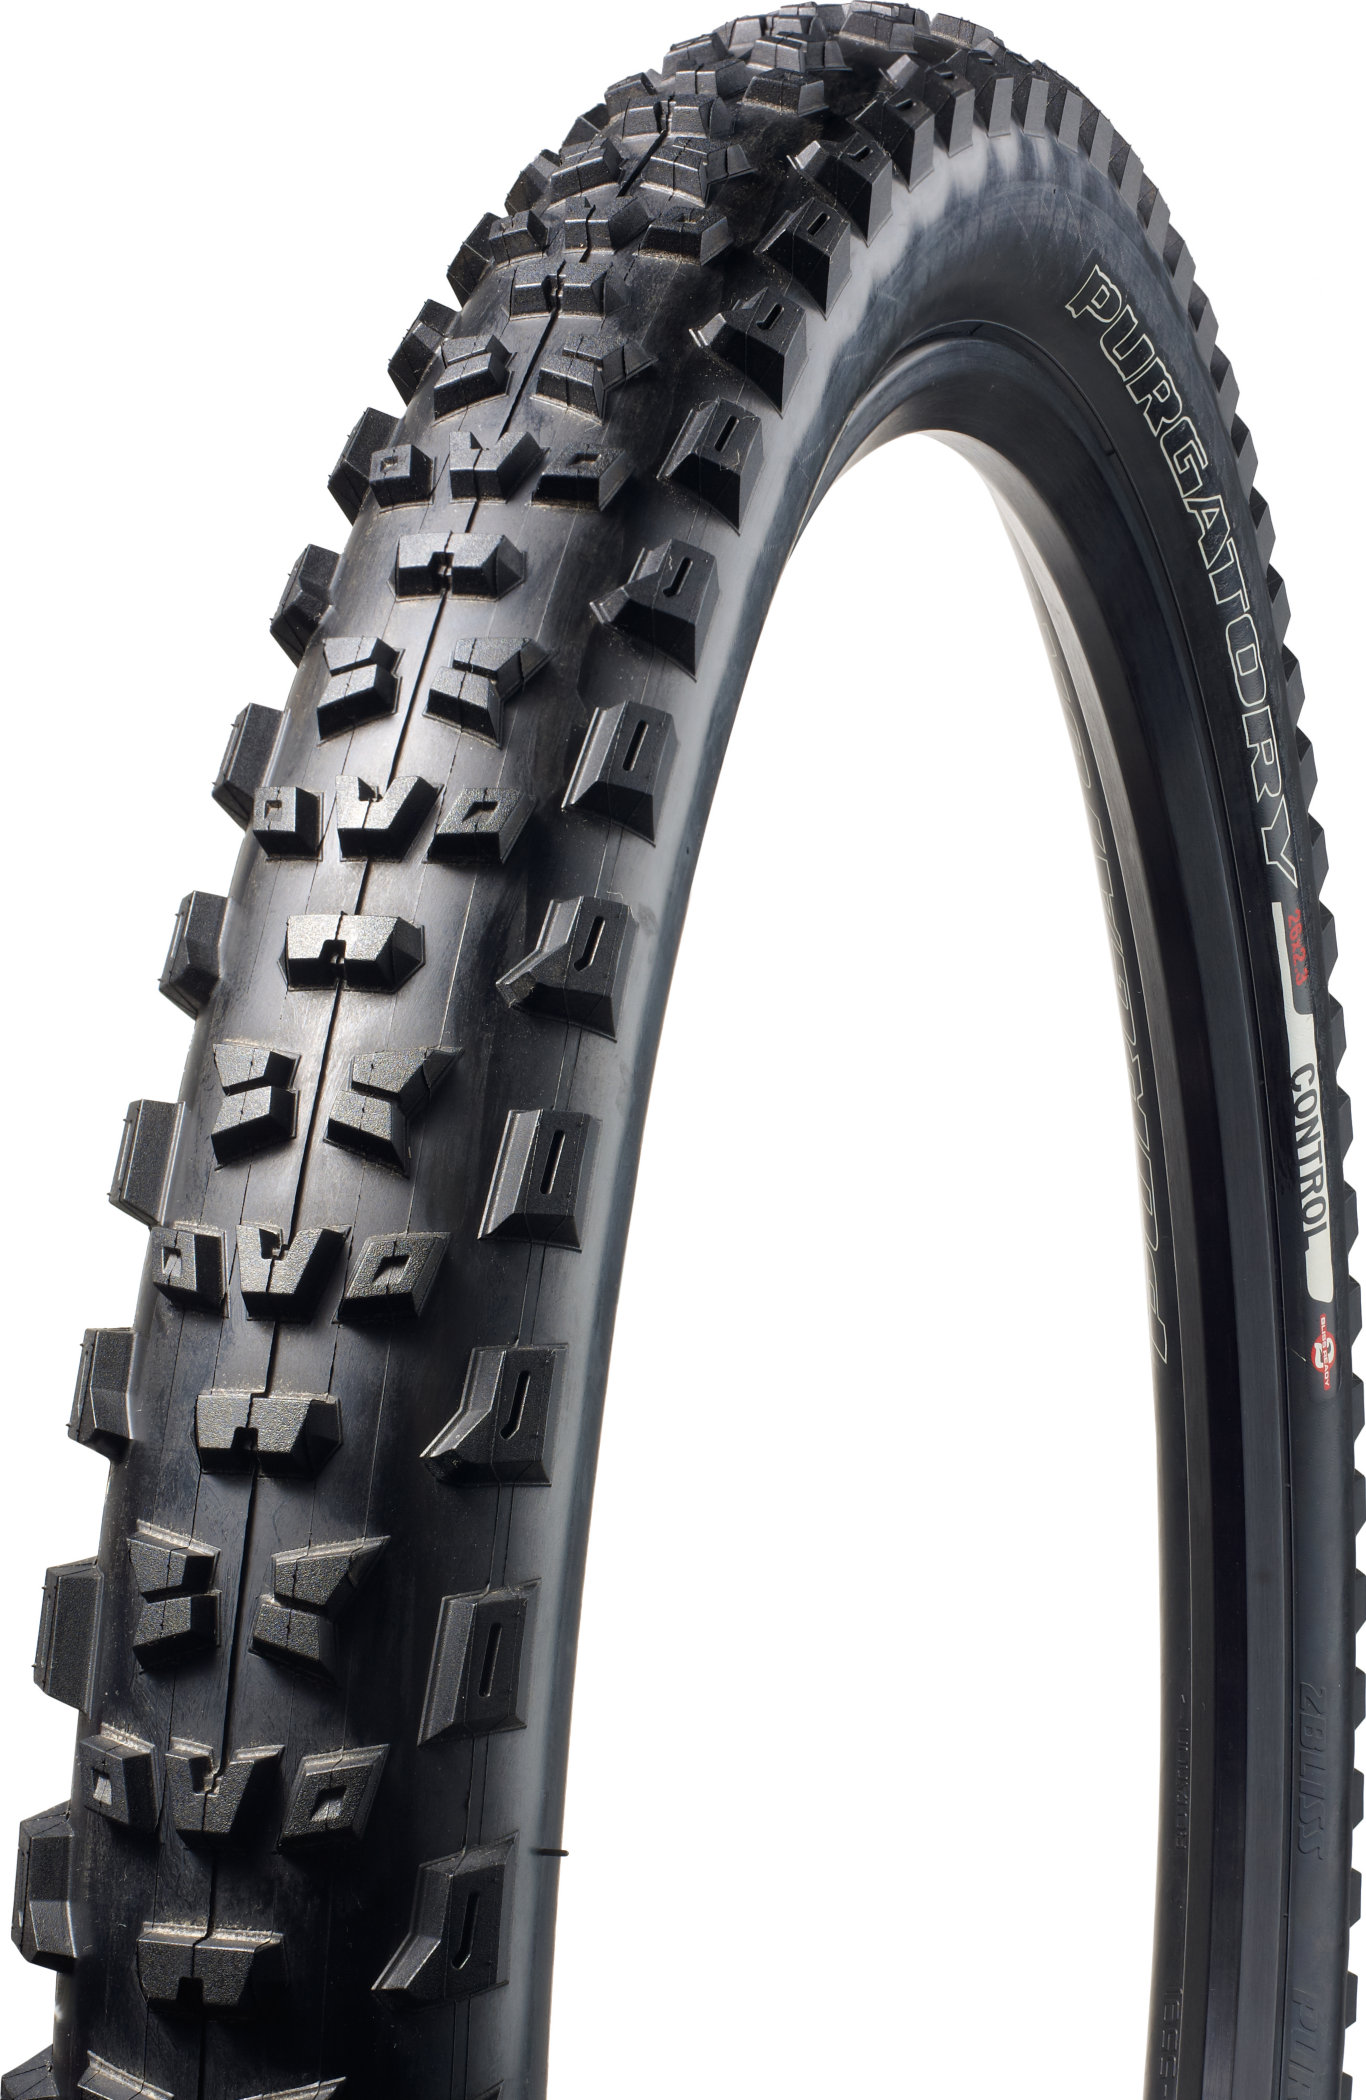 SPECIALIZED PURGATORY GRID 2BR TIRE 26X2.3 - SPECIALIZED PURGATORY GRID 2BR TIRE 26X2.3